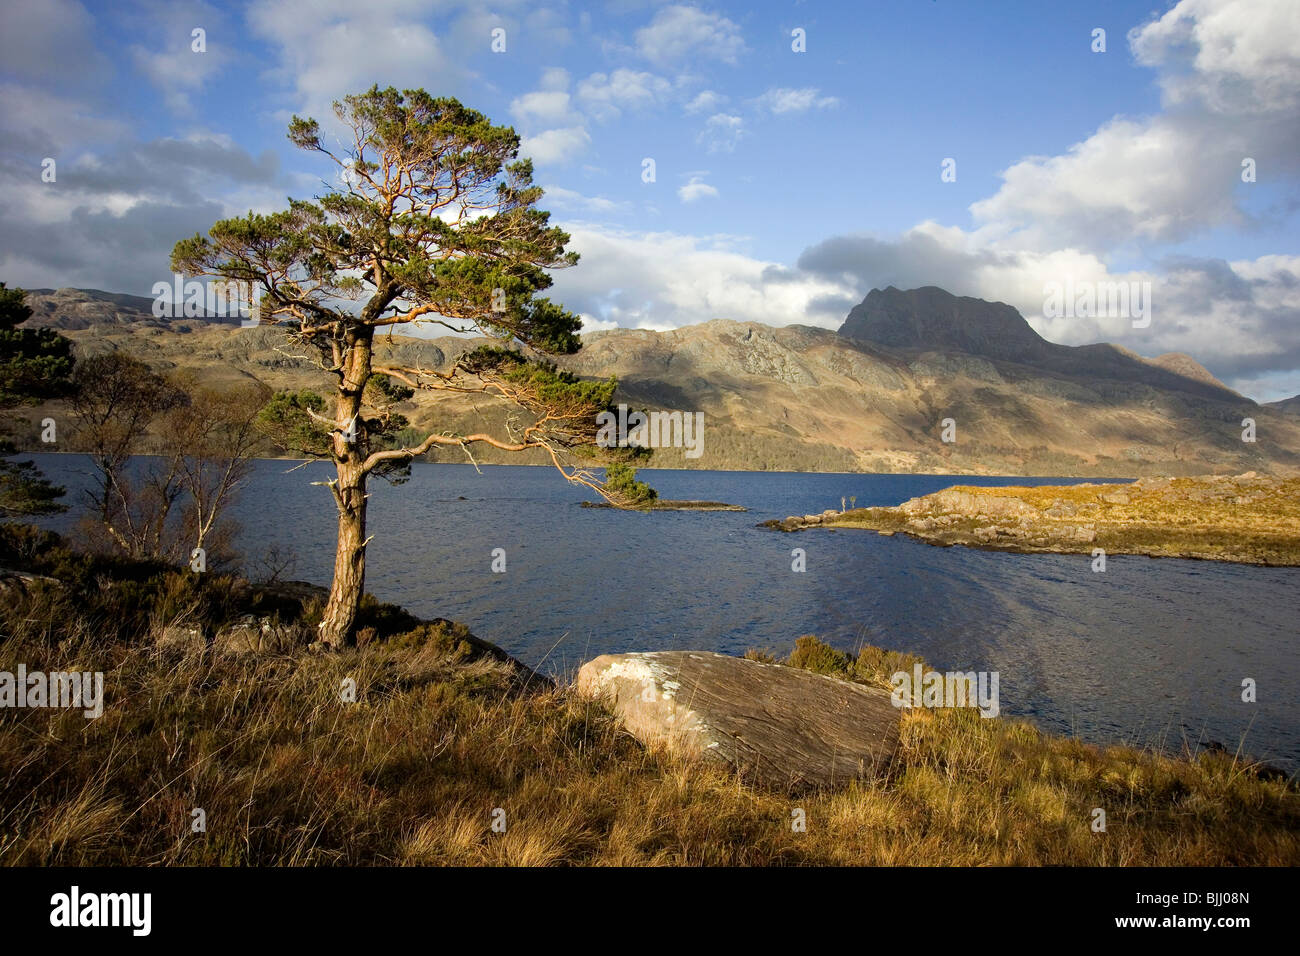 Scots Pine on shores of Loch Maree with Slioch Mountain in distance - Stock Image